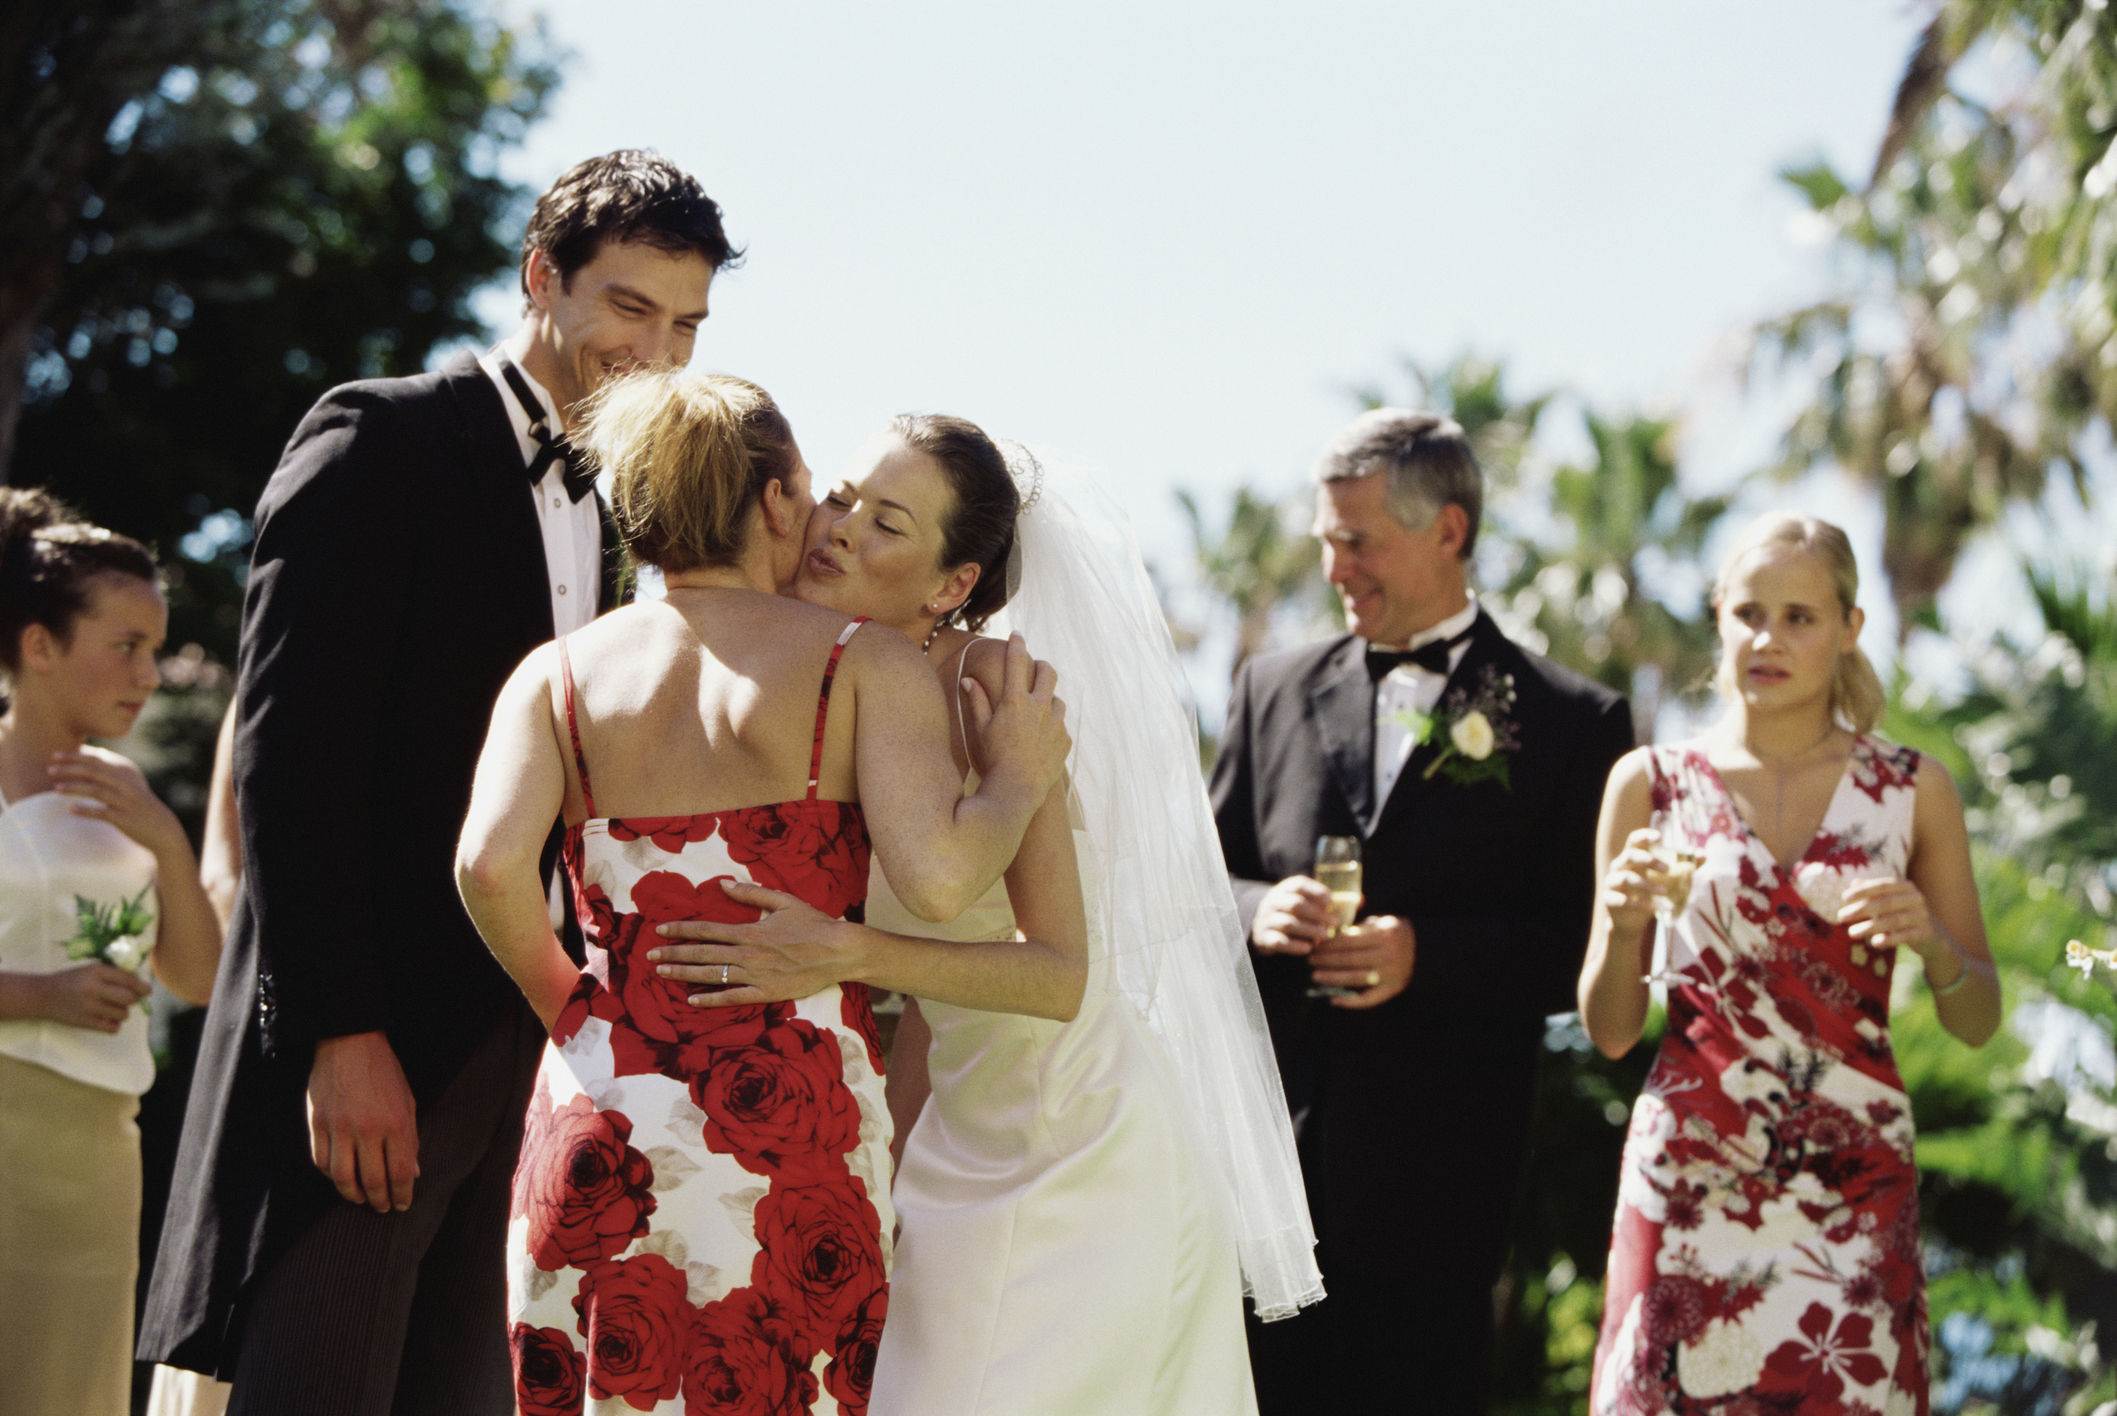 Wedding Etiquette For Groom S Parents: Dress Etiquette For The Mother Of The Groom